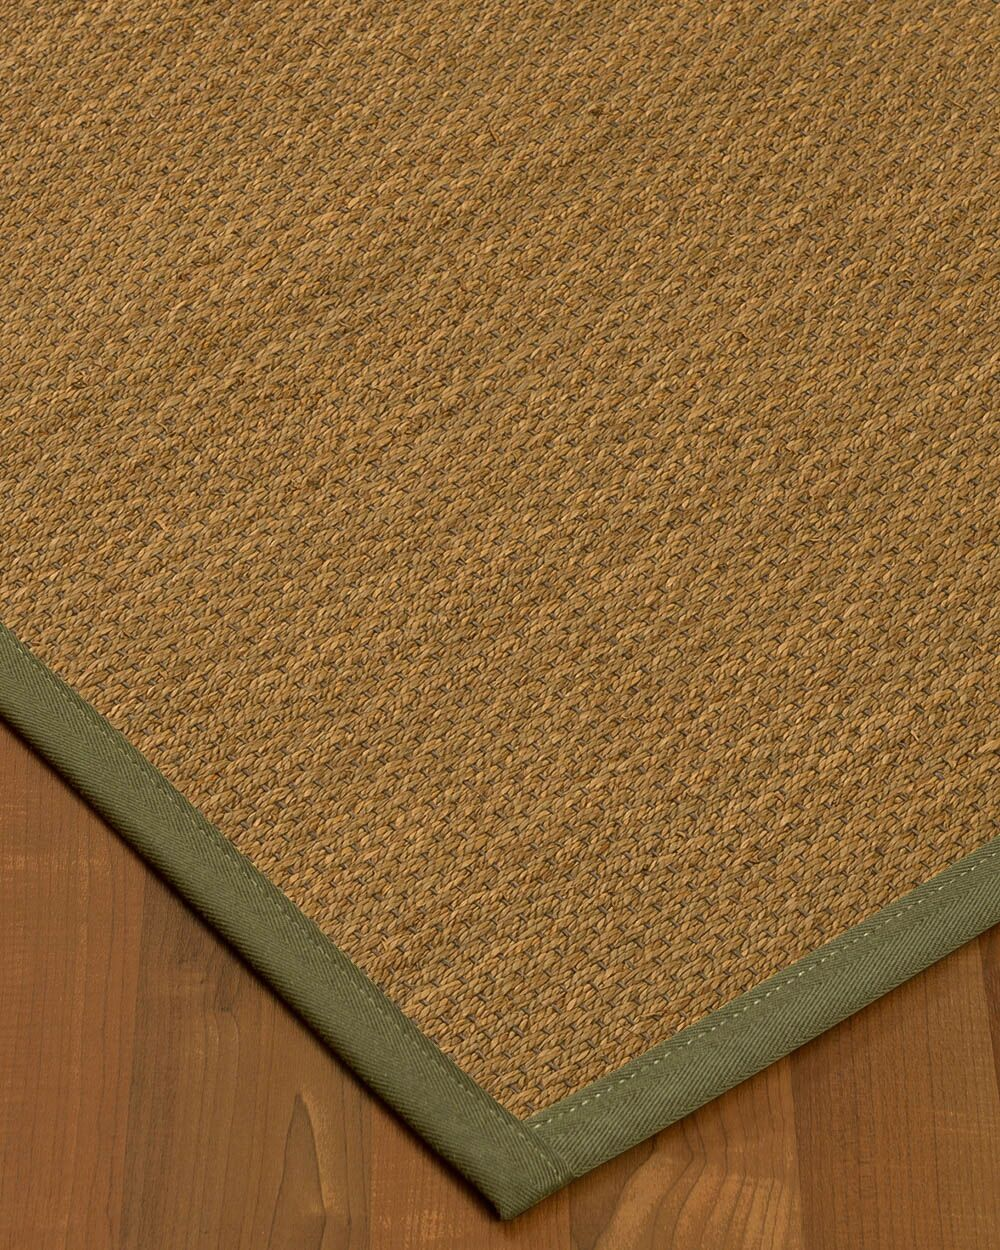 Chavis Border Hand-Woven Beige/Fossil Area Rug Rug Size: Rectangle 12' x 15', Rug Pad Included: Yes